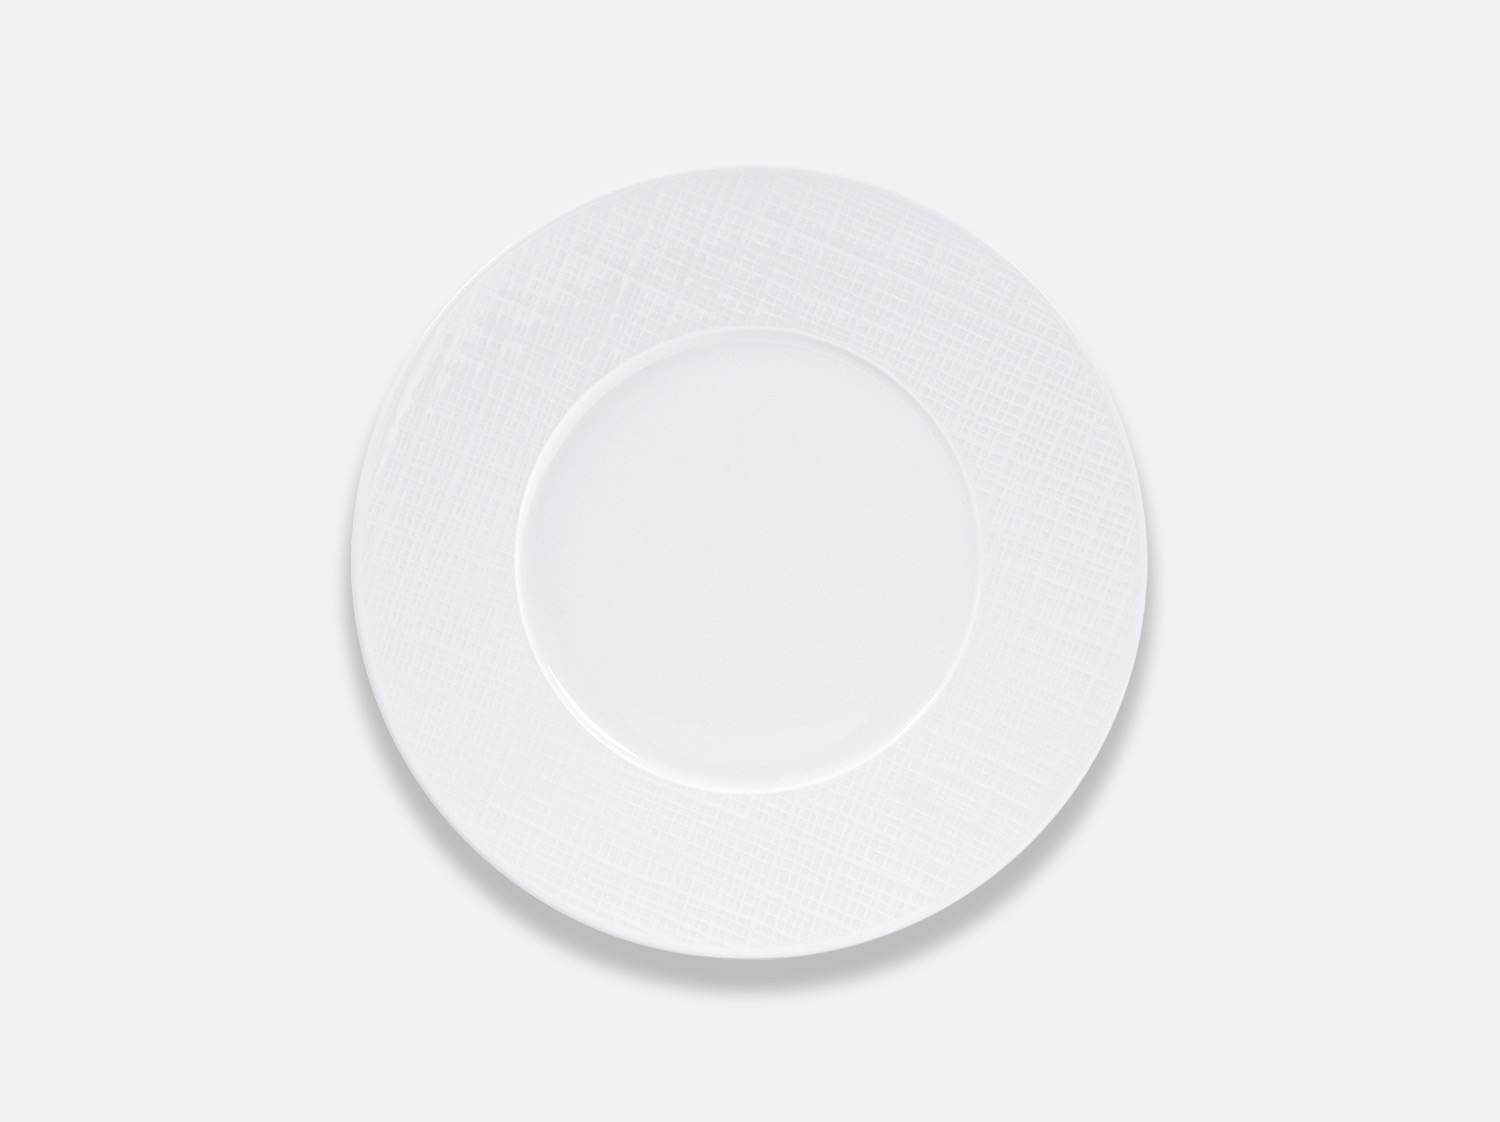 Assiette plate 21 cm en porcelaine de la collection Organza Bernardaud